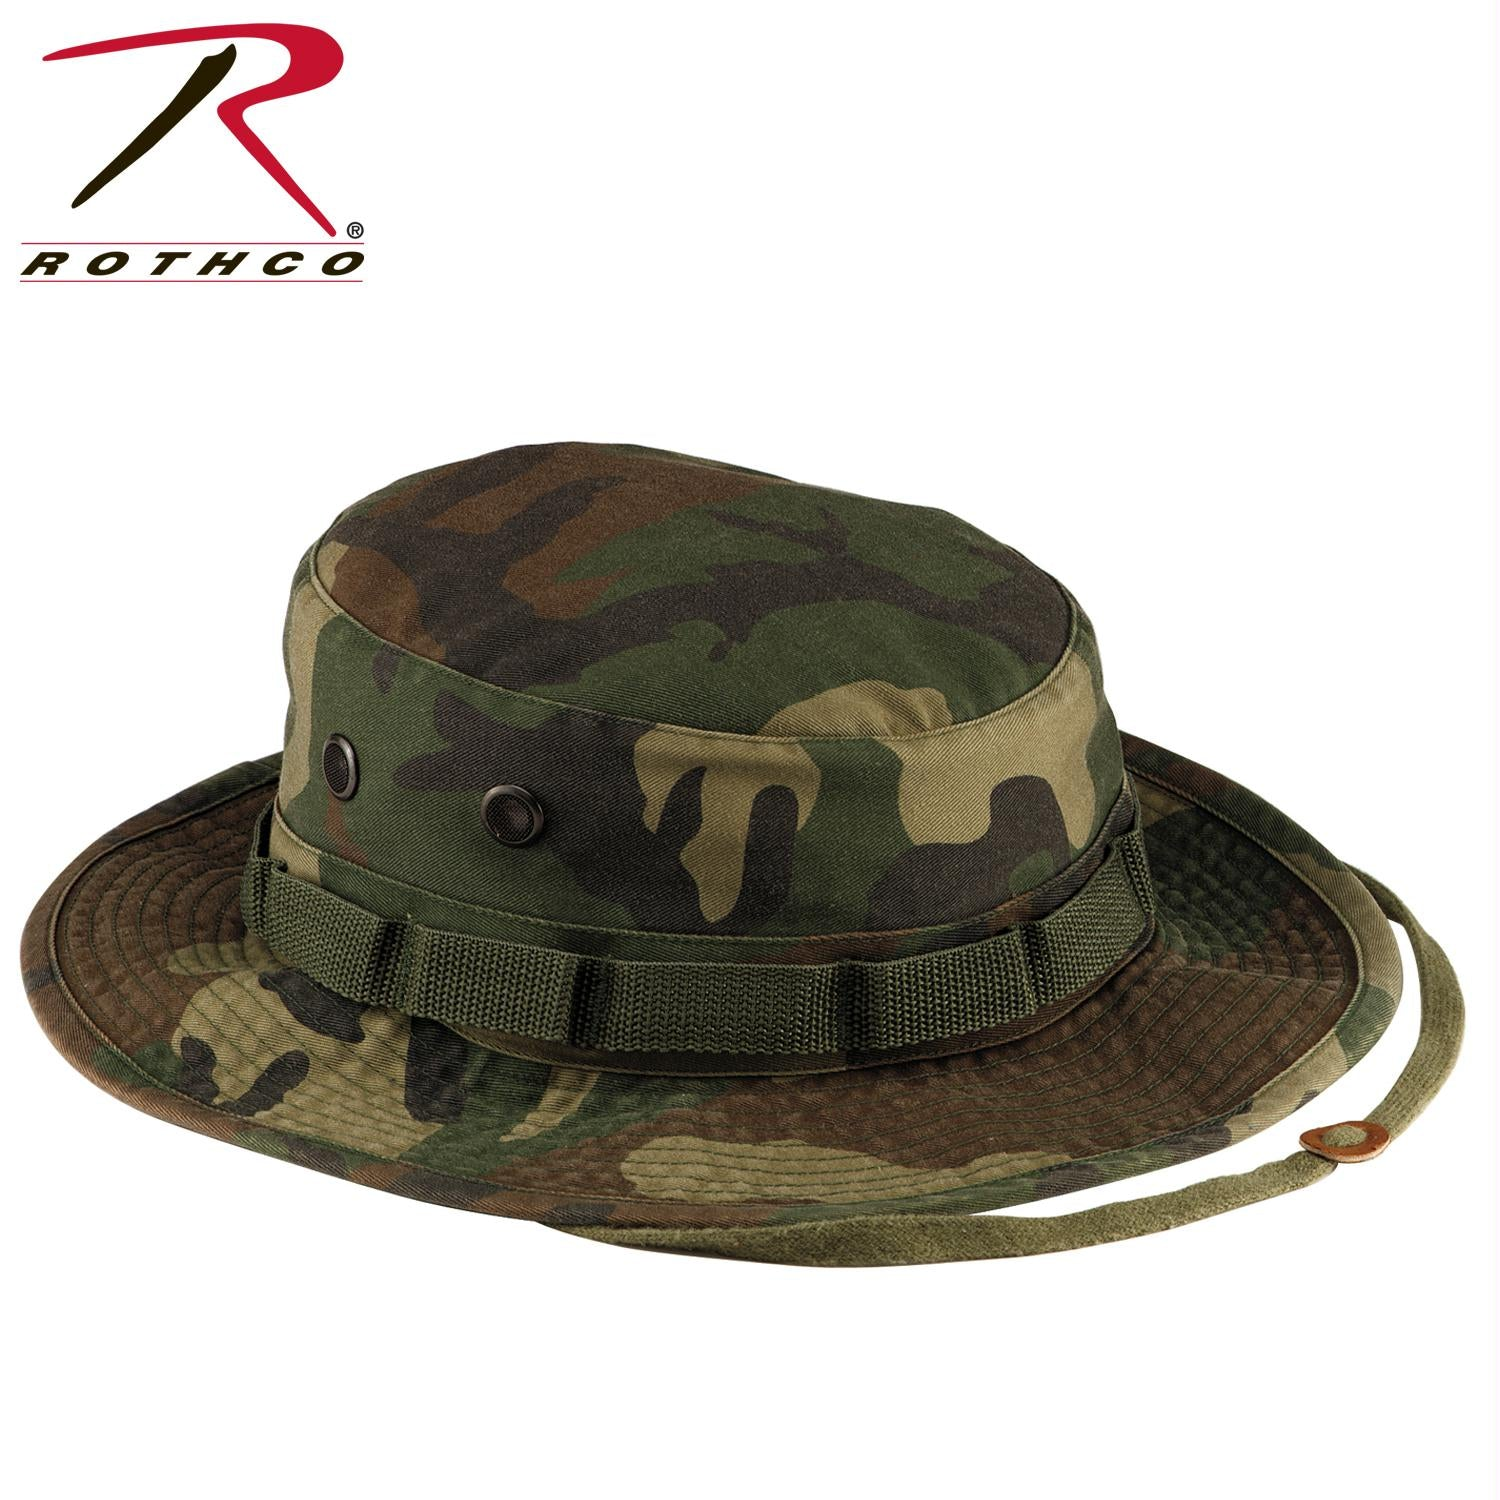 Rothco Vintage Boonie Hat - Woodland Camo / 6 3/4